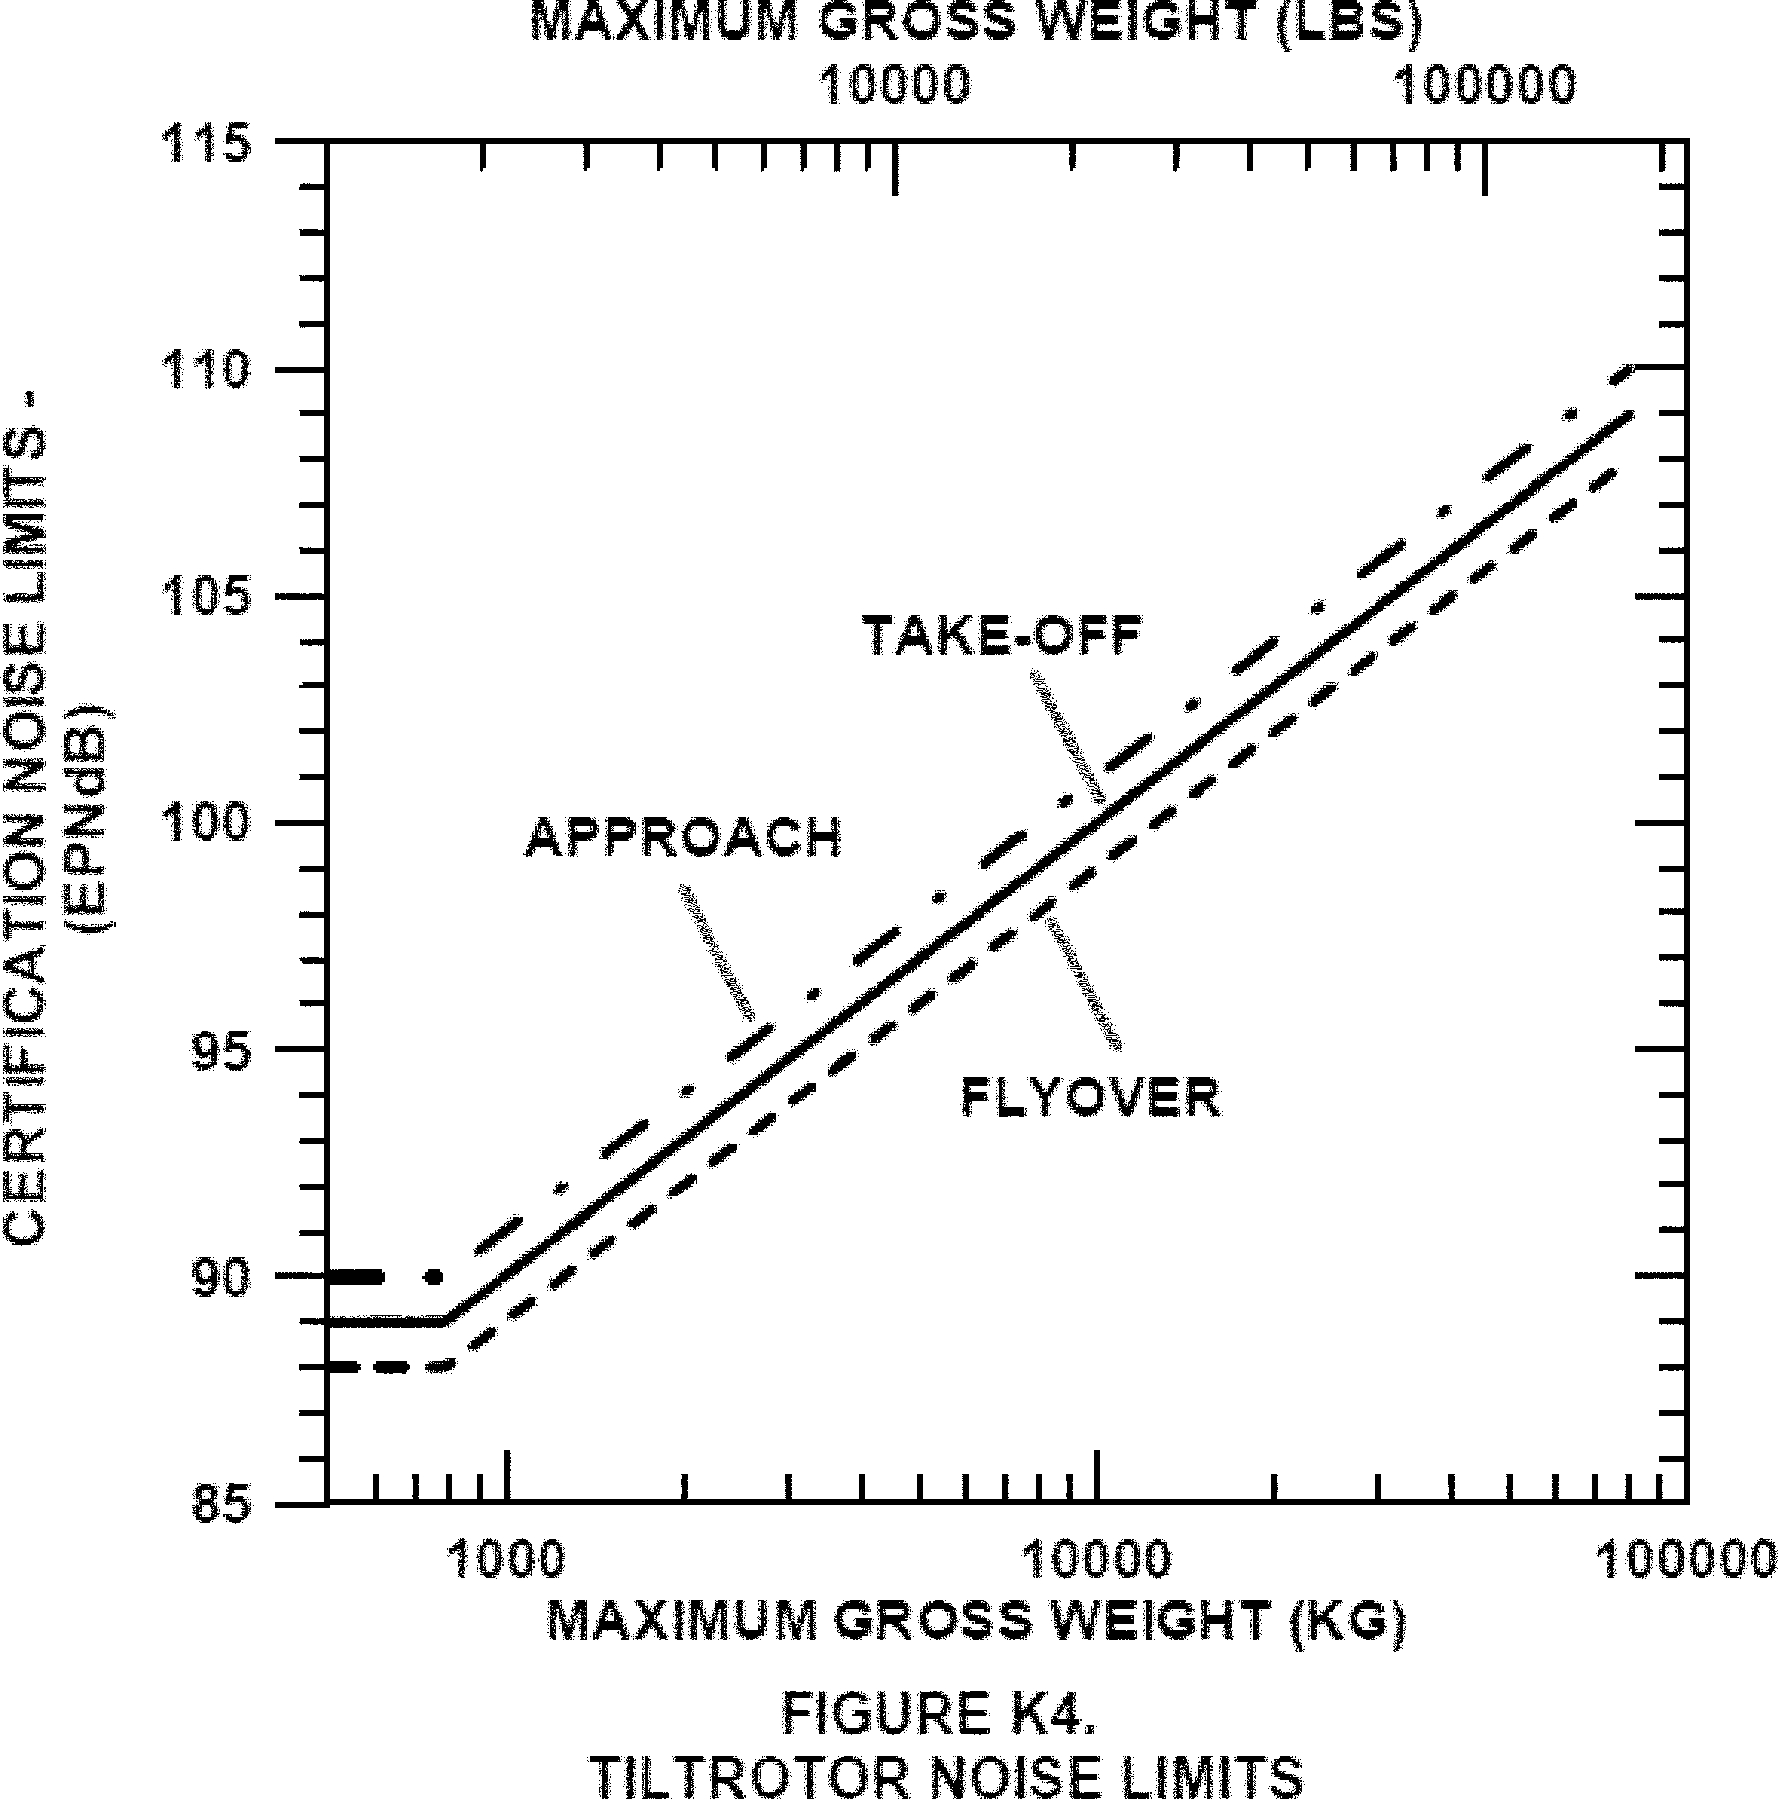 Graphic of (c) At the approach flight path reference point: For a tiltrotor having a maximum certificated takeoff weight (mass) of 176,370 pounds (80,000 kg) or more, in VTOL/Conversion mode, 110 EPNdB, decreasing linearly with the logarithm of the tiltrotors weight (mass) at a rate of 3.0 EPNdB per halving of weight (mass) down to 90 EPNdB, after which the limit is constant. Figure K4 illustrates the approach noise limit as a dash-dot line.